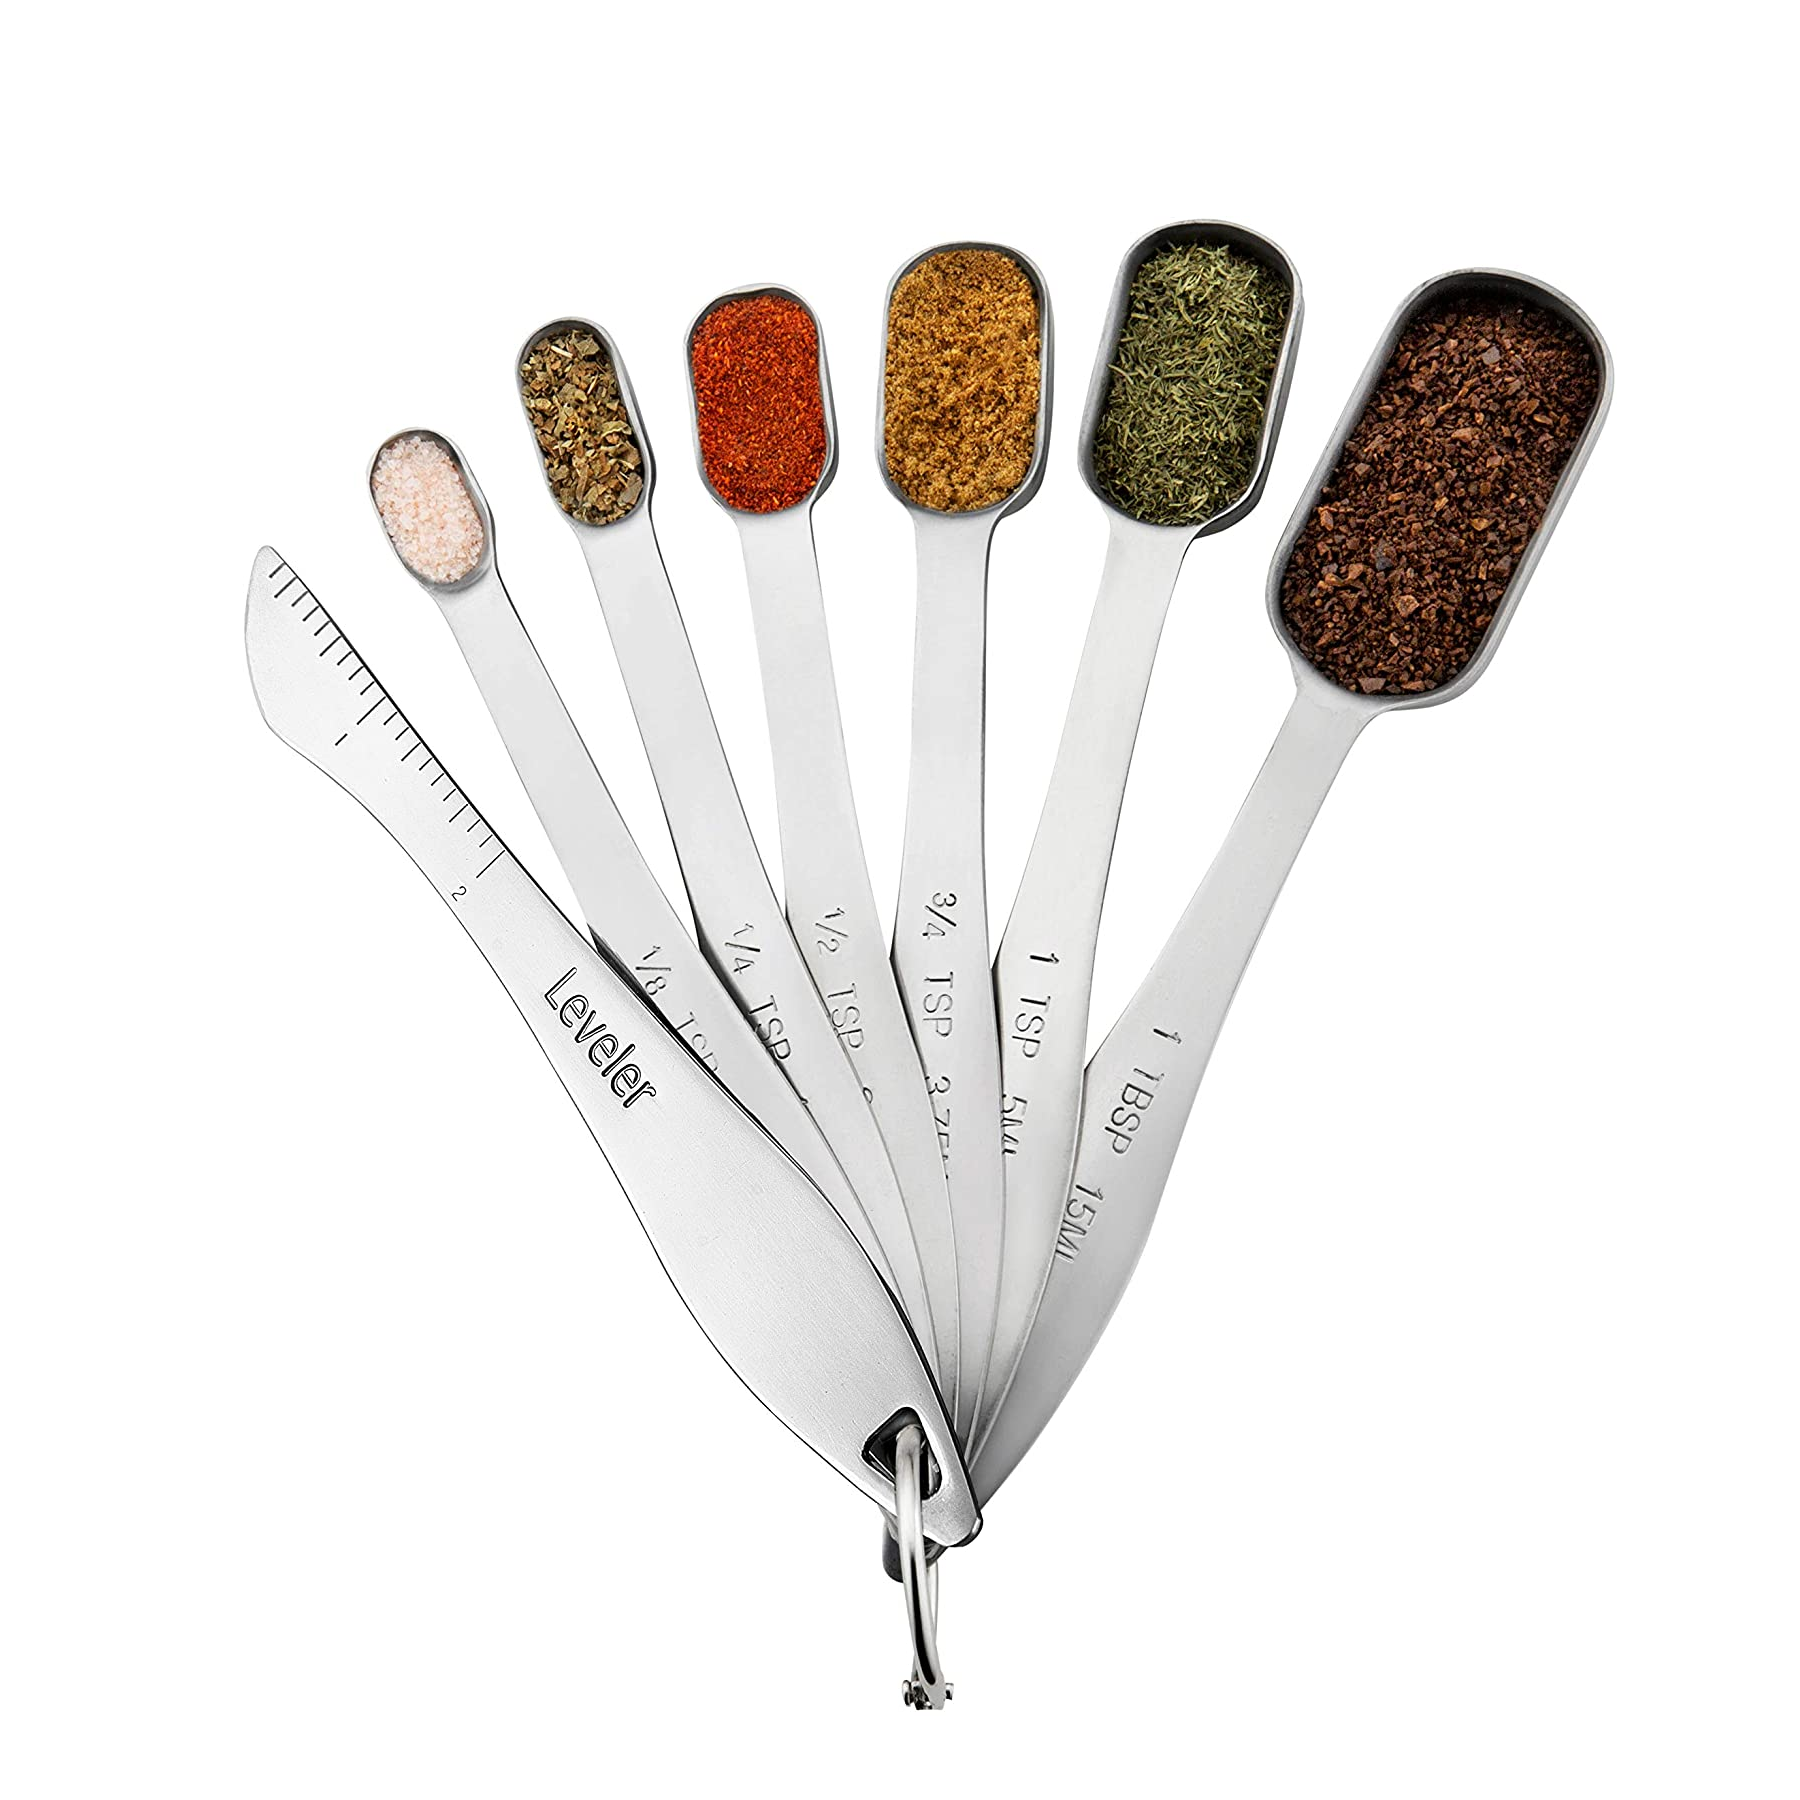 9020store Heavy Duty Stainless Steel Metal Measuring Spoons for Dry or Liquid, Fits in Spice Jar, Set of 6 with bonus Leveler